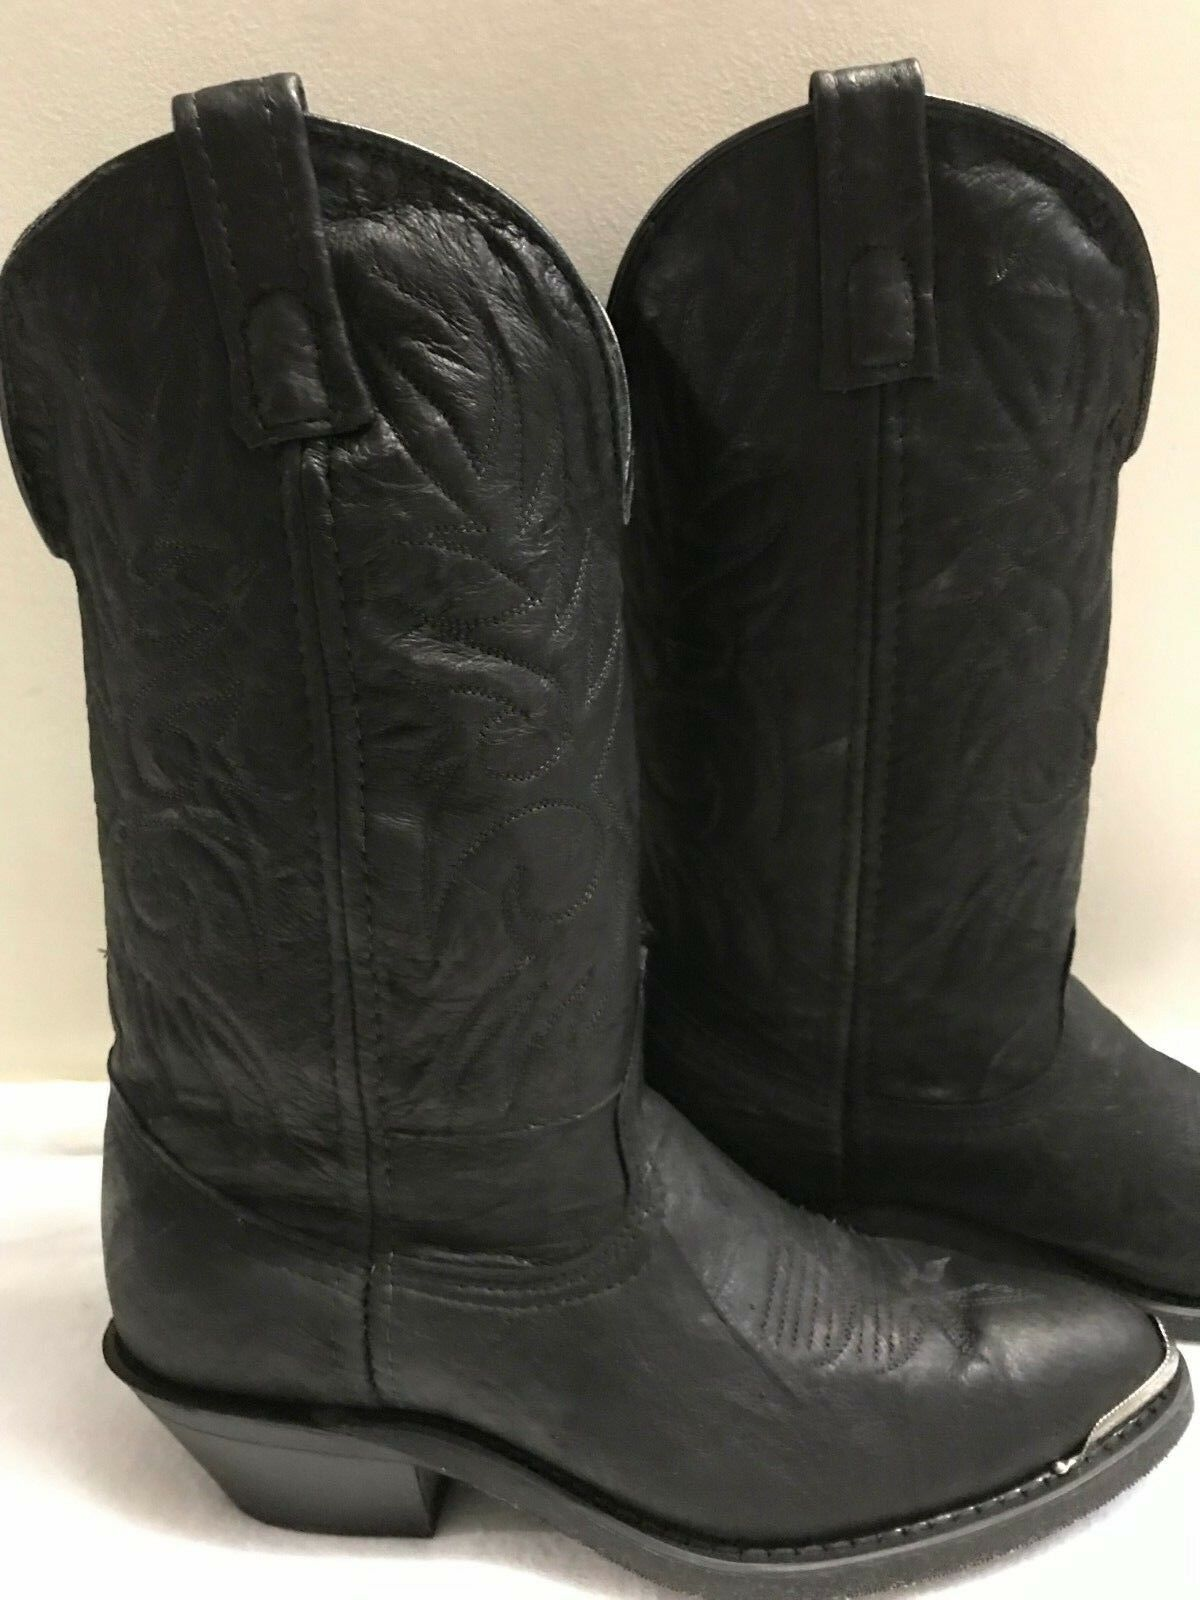 American West Western Women's Cowgirl Boots Black Leather Leather Leather 7 1 2 B New In Box 6c8239